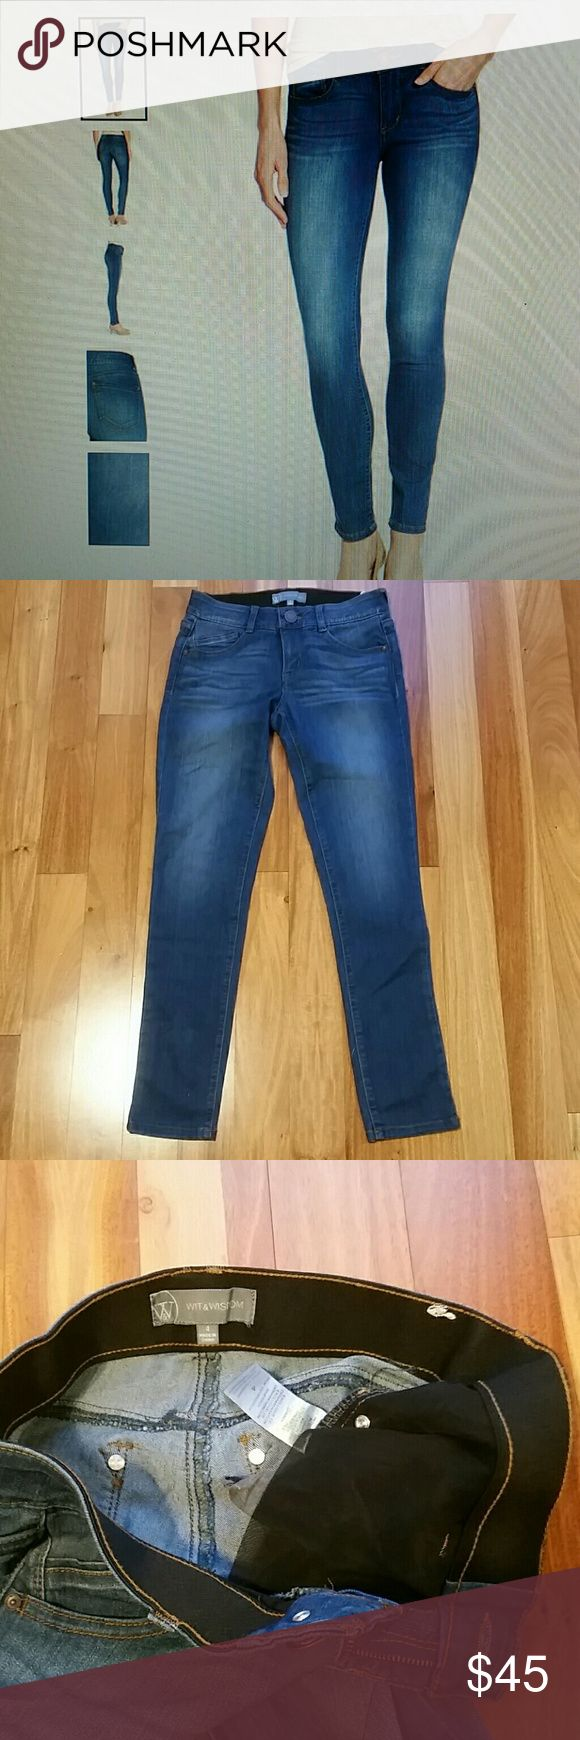 """WIT & WISDOM AB-SOLUTION STRETCH SKINNY JEANS IT WAS STORE DISPLAY WITH A SMALL DEFECT. IN TWO PLACES HAS A MARKS  (LOOK LIKE MORE FADED COLOR,SEE PIC)SZ 4. ZIP FLY WITH BUTTON CLOSURE. 5 POCKETS STYLE. 54% COTTON 27% RAYON 17 % POLYESTER 2% SPANDEX. MID RISE. 4=27.AB-SOLUTION POWER MESH PANELS TO SLIM AND HOLD ,INCLUDING A WAISTBAND WITH INTERIOR CONTROL AND BOOTY-LIFT CONSTRUCTION. 28"""" INSEAM 36"""" LENGTH 14"""" WAIST 8.5"""" FRONT RISE. ALL MEASUREMENTS ARE TAKING WITH THE GARMENT LYING FLAT…"""